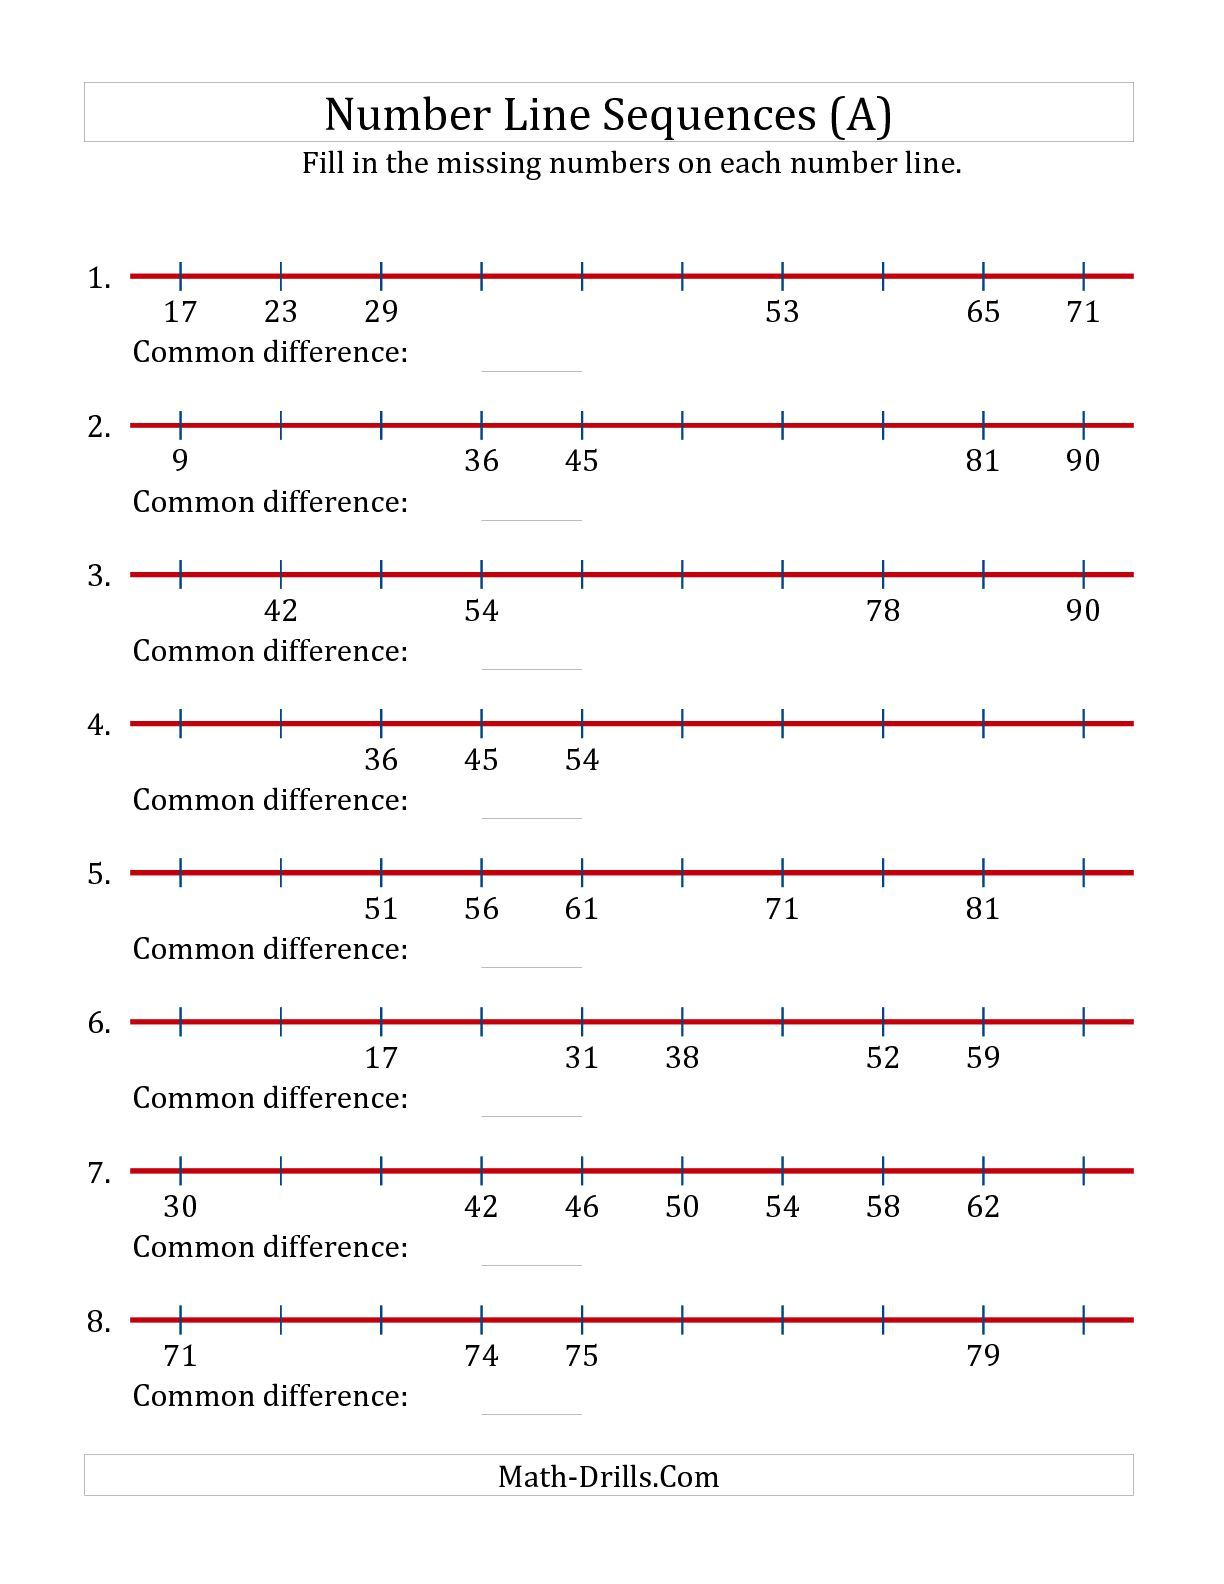 The Increasing Number Line Sequences With Missing Numbers Max 100 A Number Line Worksheet